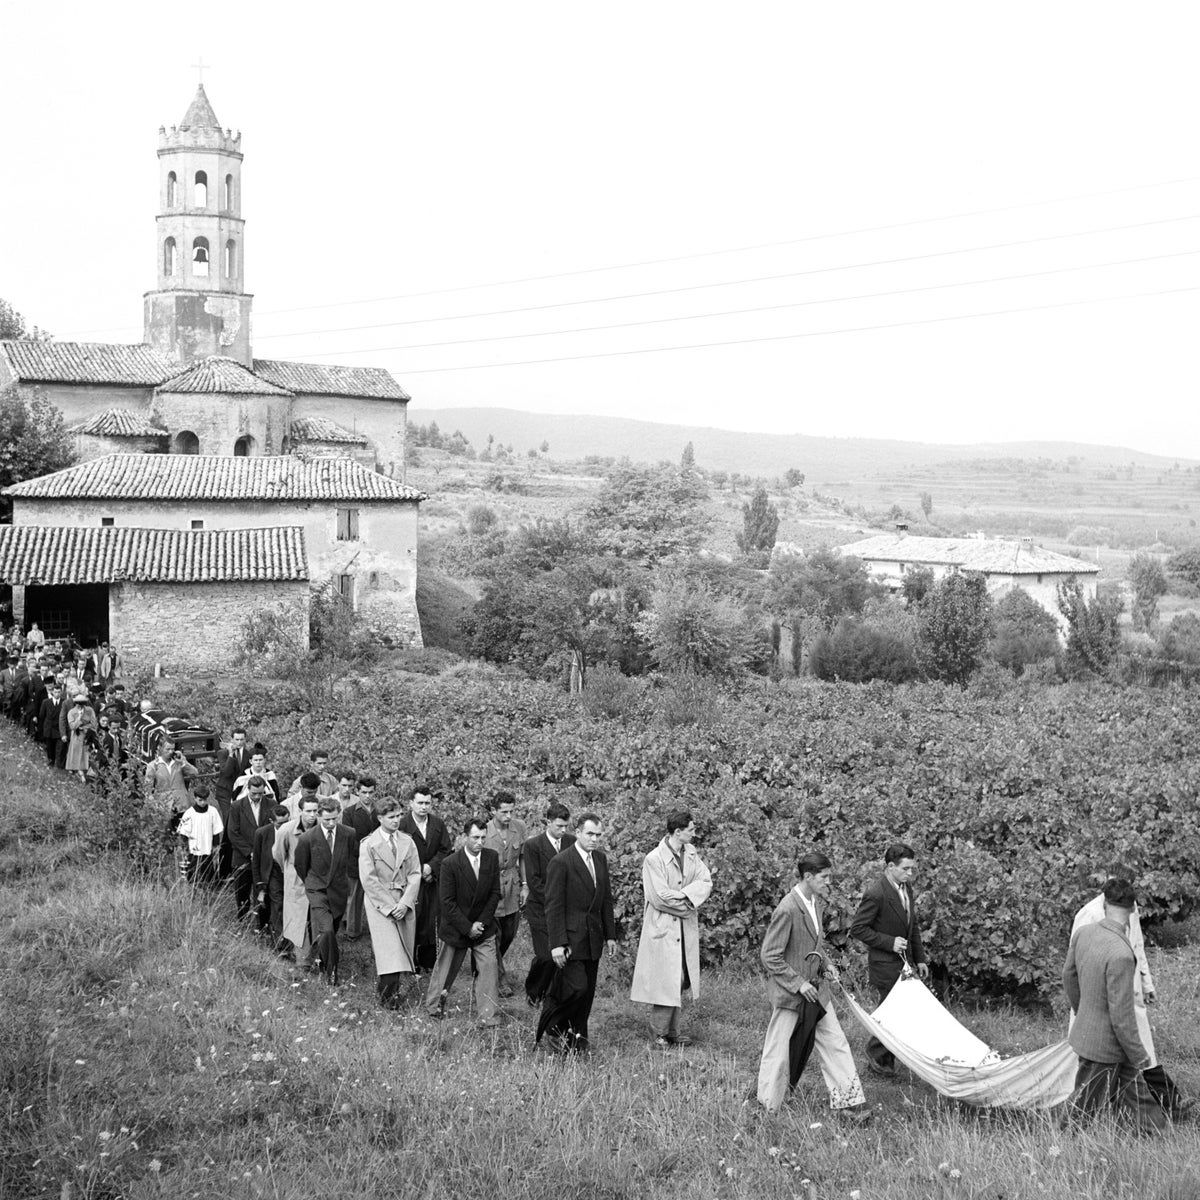 The funeral procession for a victim of the Pont-Saint-Esprit incident.